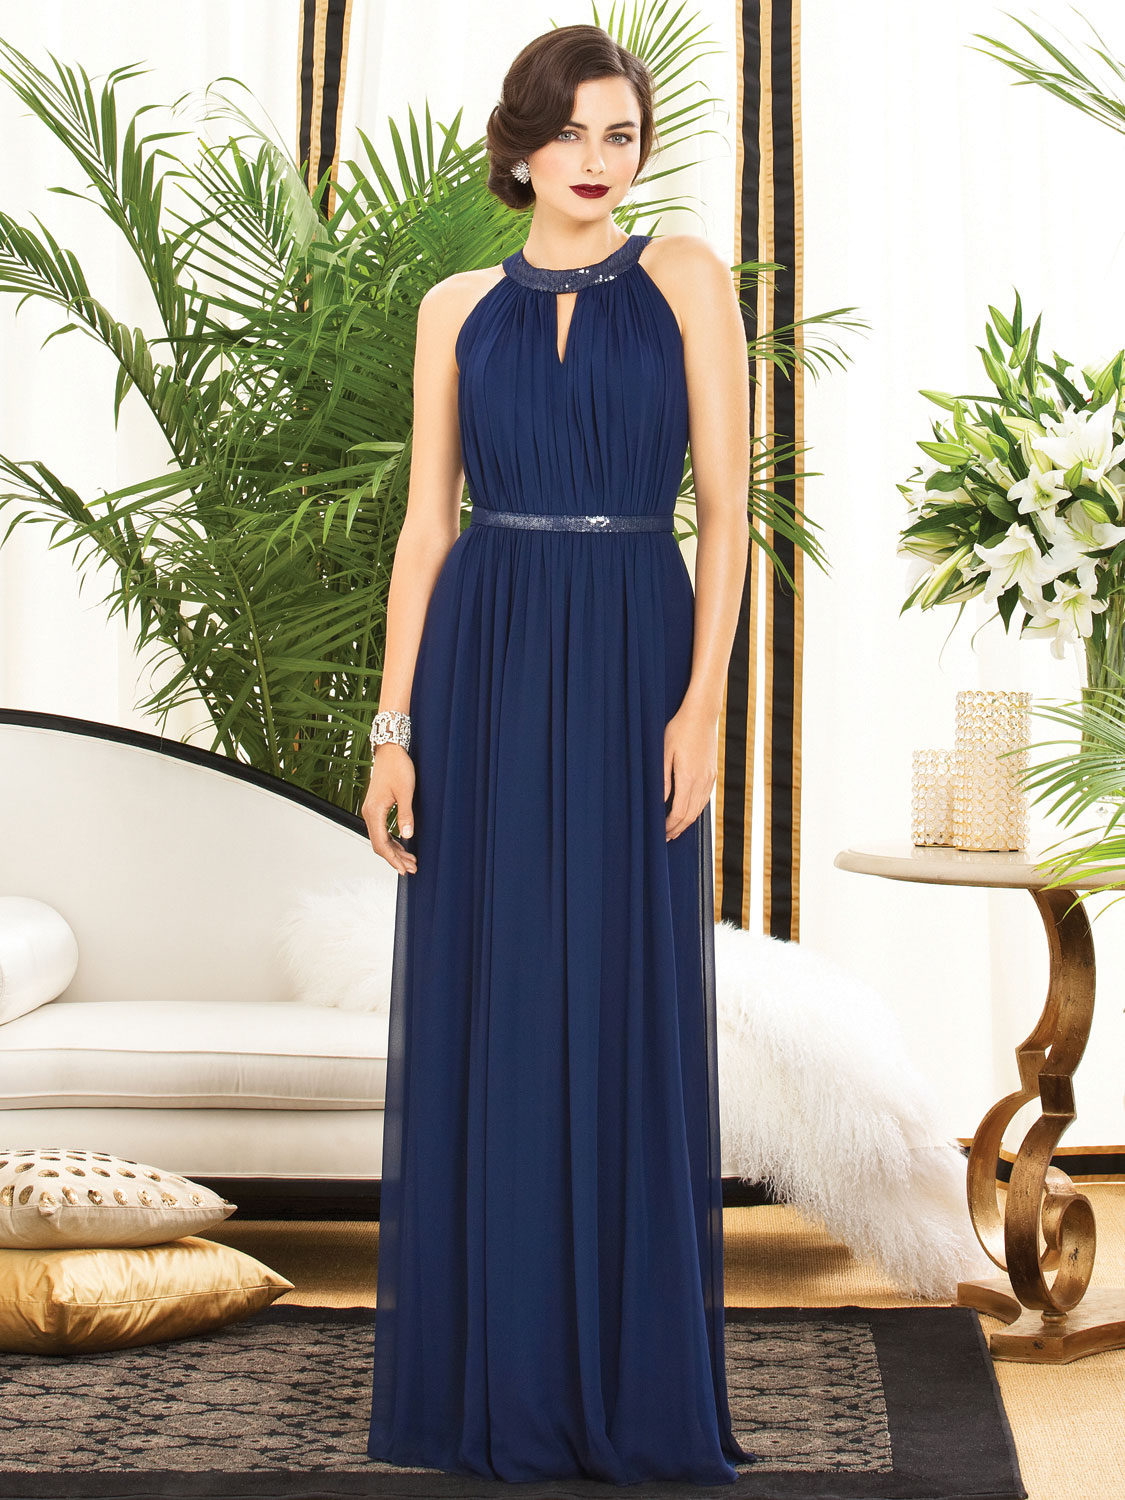 Bridesmaid dresses navy blue long bridesmaid dresses navy blue long 67 ombrellifo Choice Image